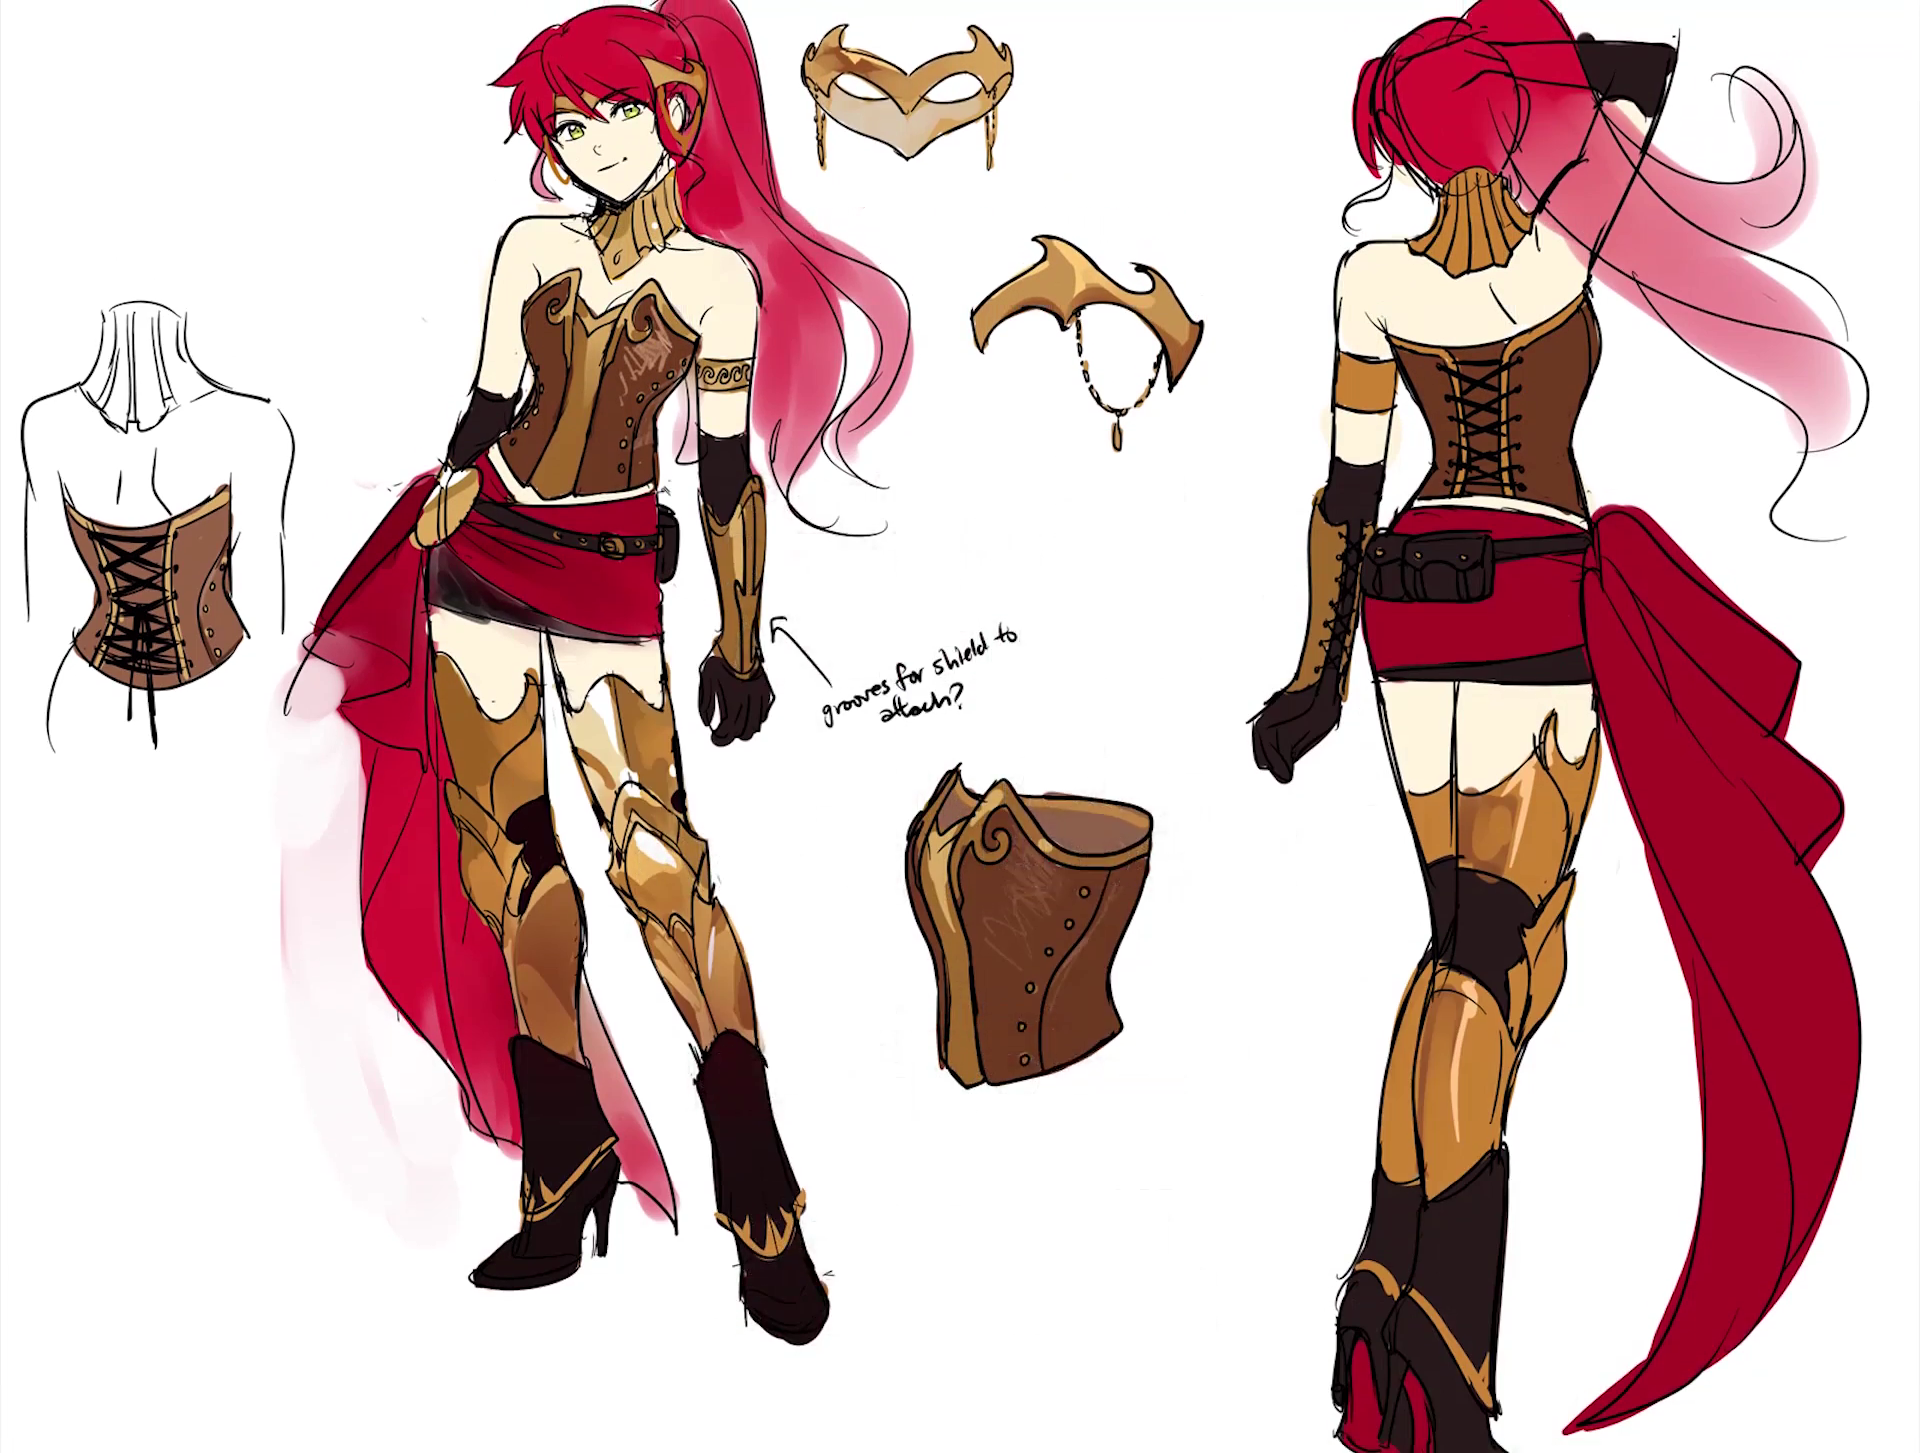 Pyrrha Nikos by Josephine-frays on DeviantArt